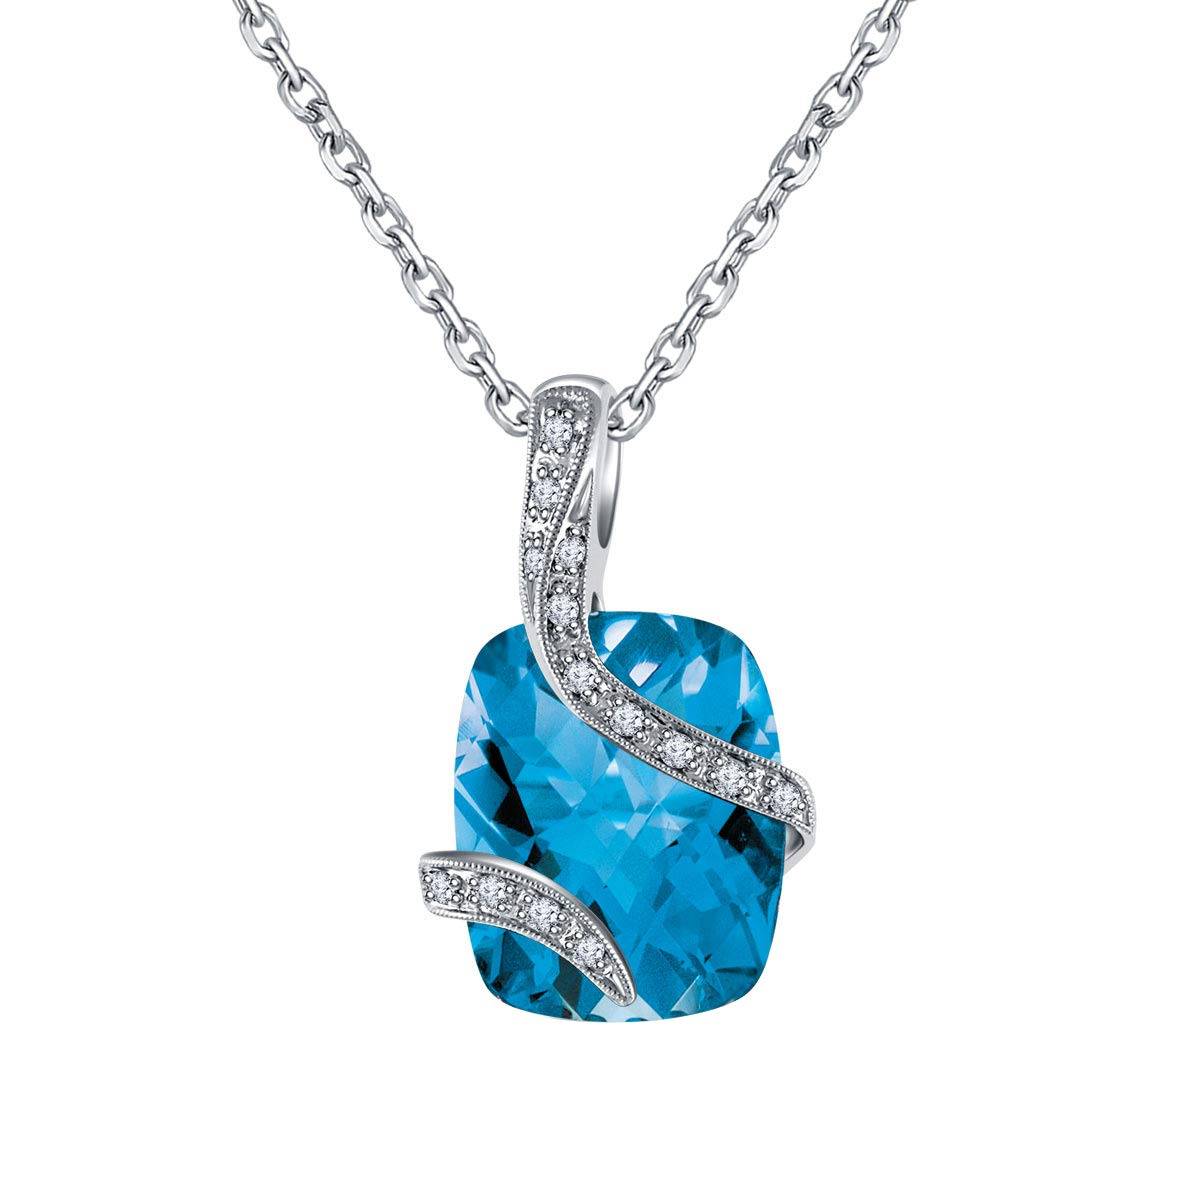 Ringjewels 0.12 Ct Cushion Blue Topaz /& Sim Diamond Halo Pendant with 18 Chain in 14K White Gold Plated